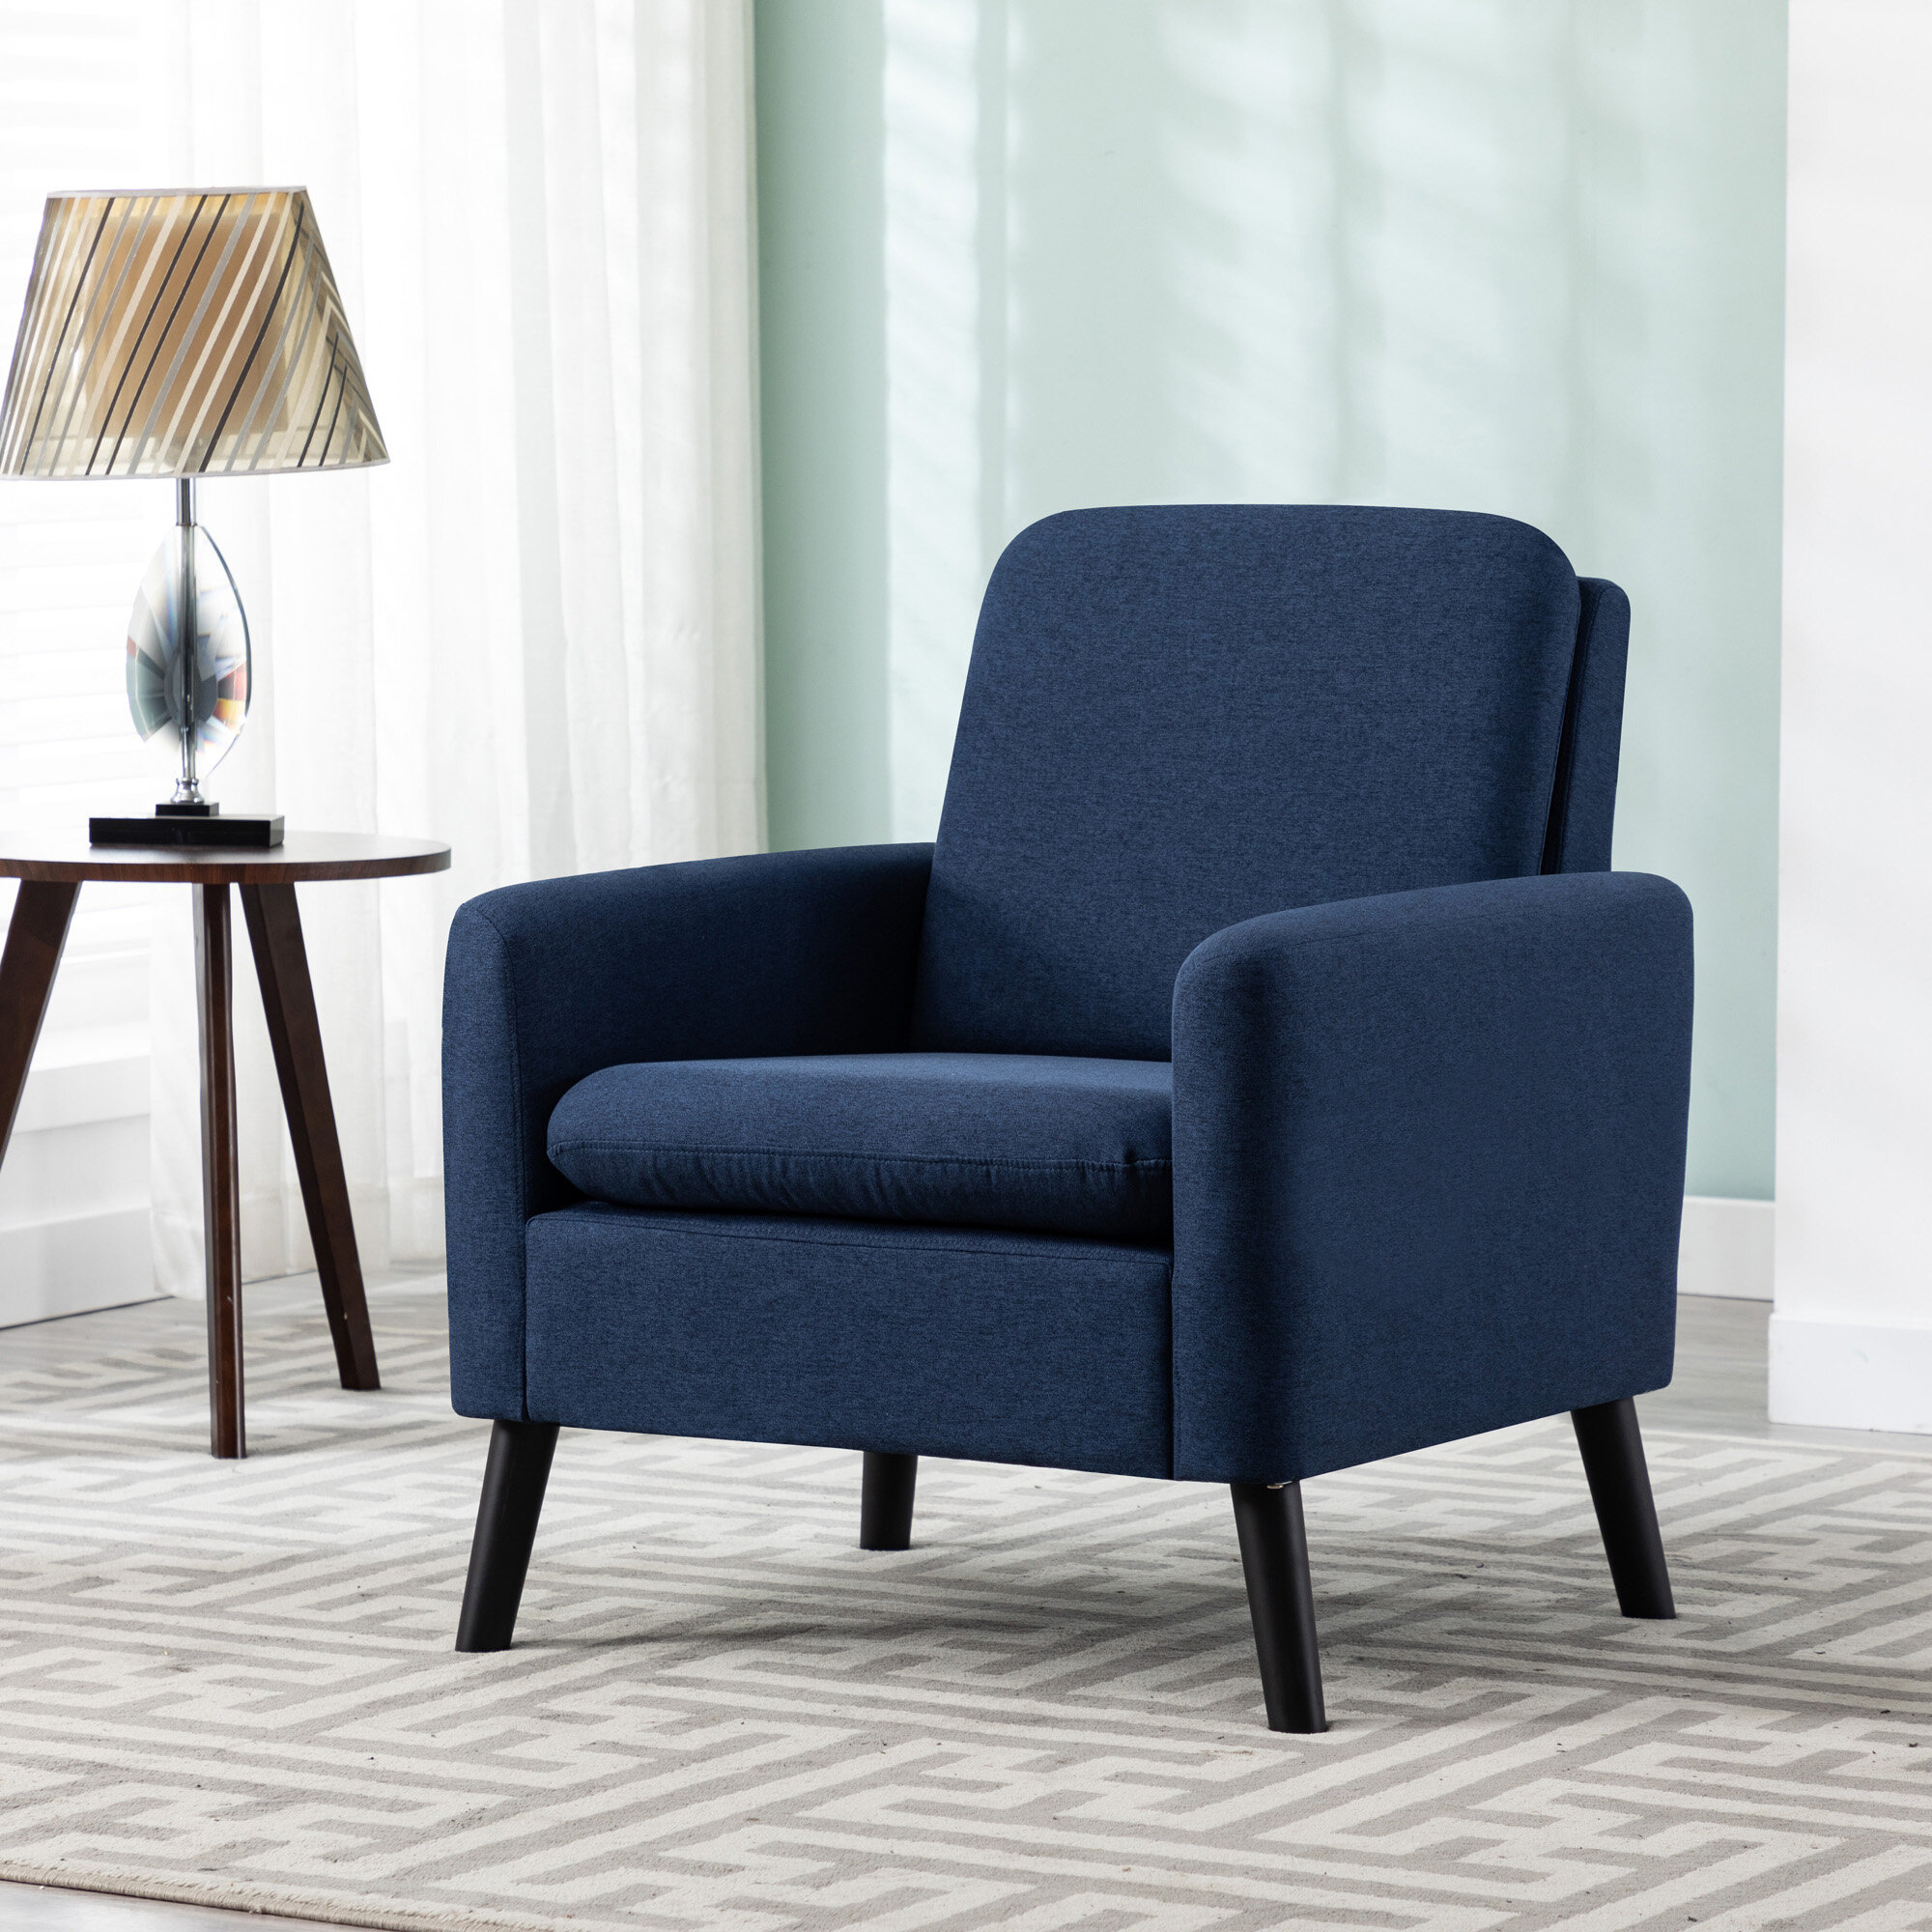 Arm Modern & Contemporary Accent Chairs You'Ll Love In 2021 With Regard To Lakeville Armchairs (View 11 of 15)